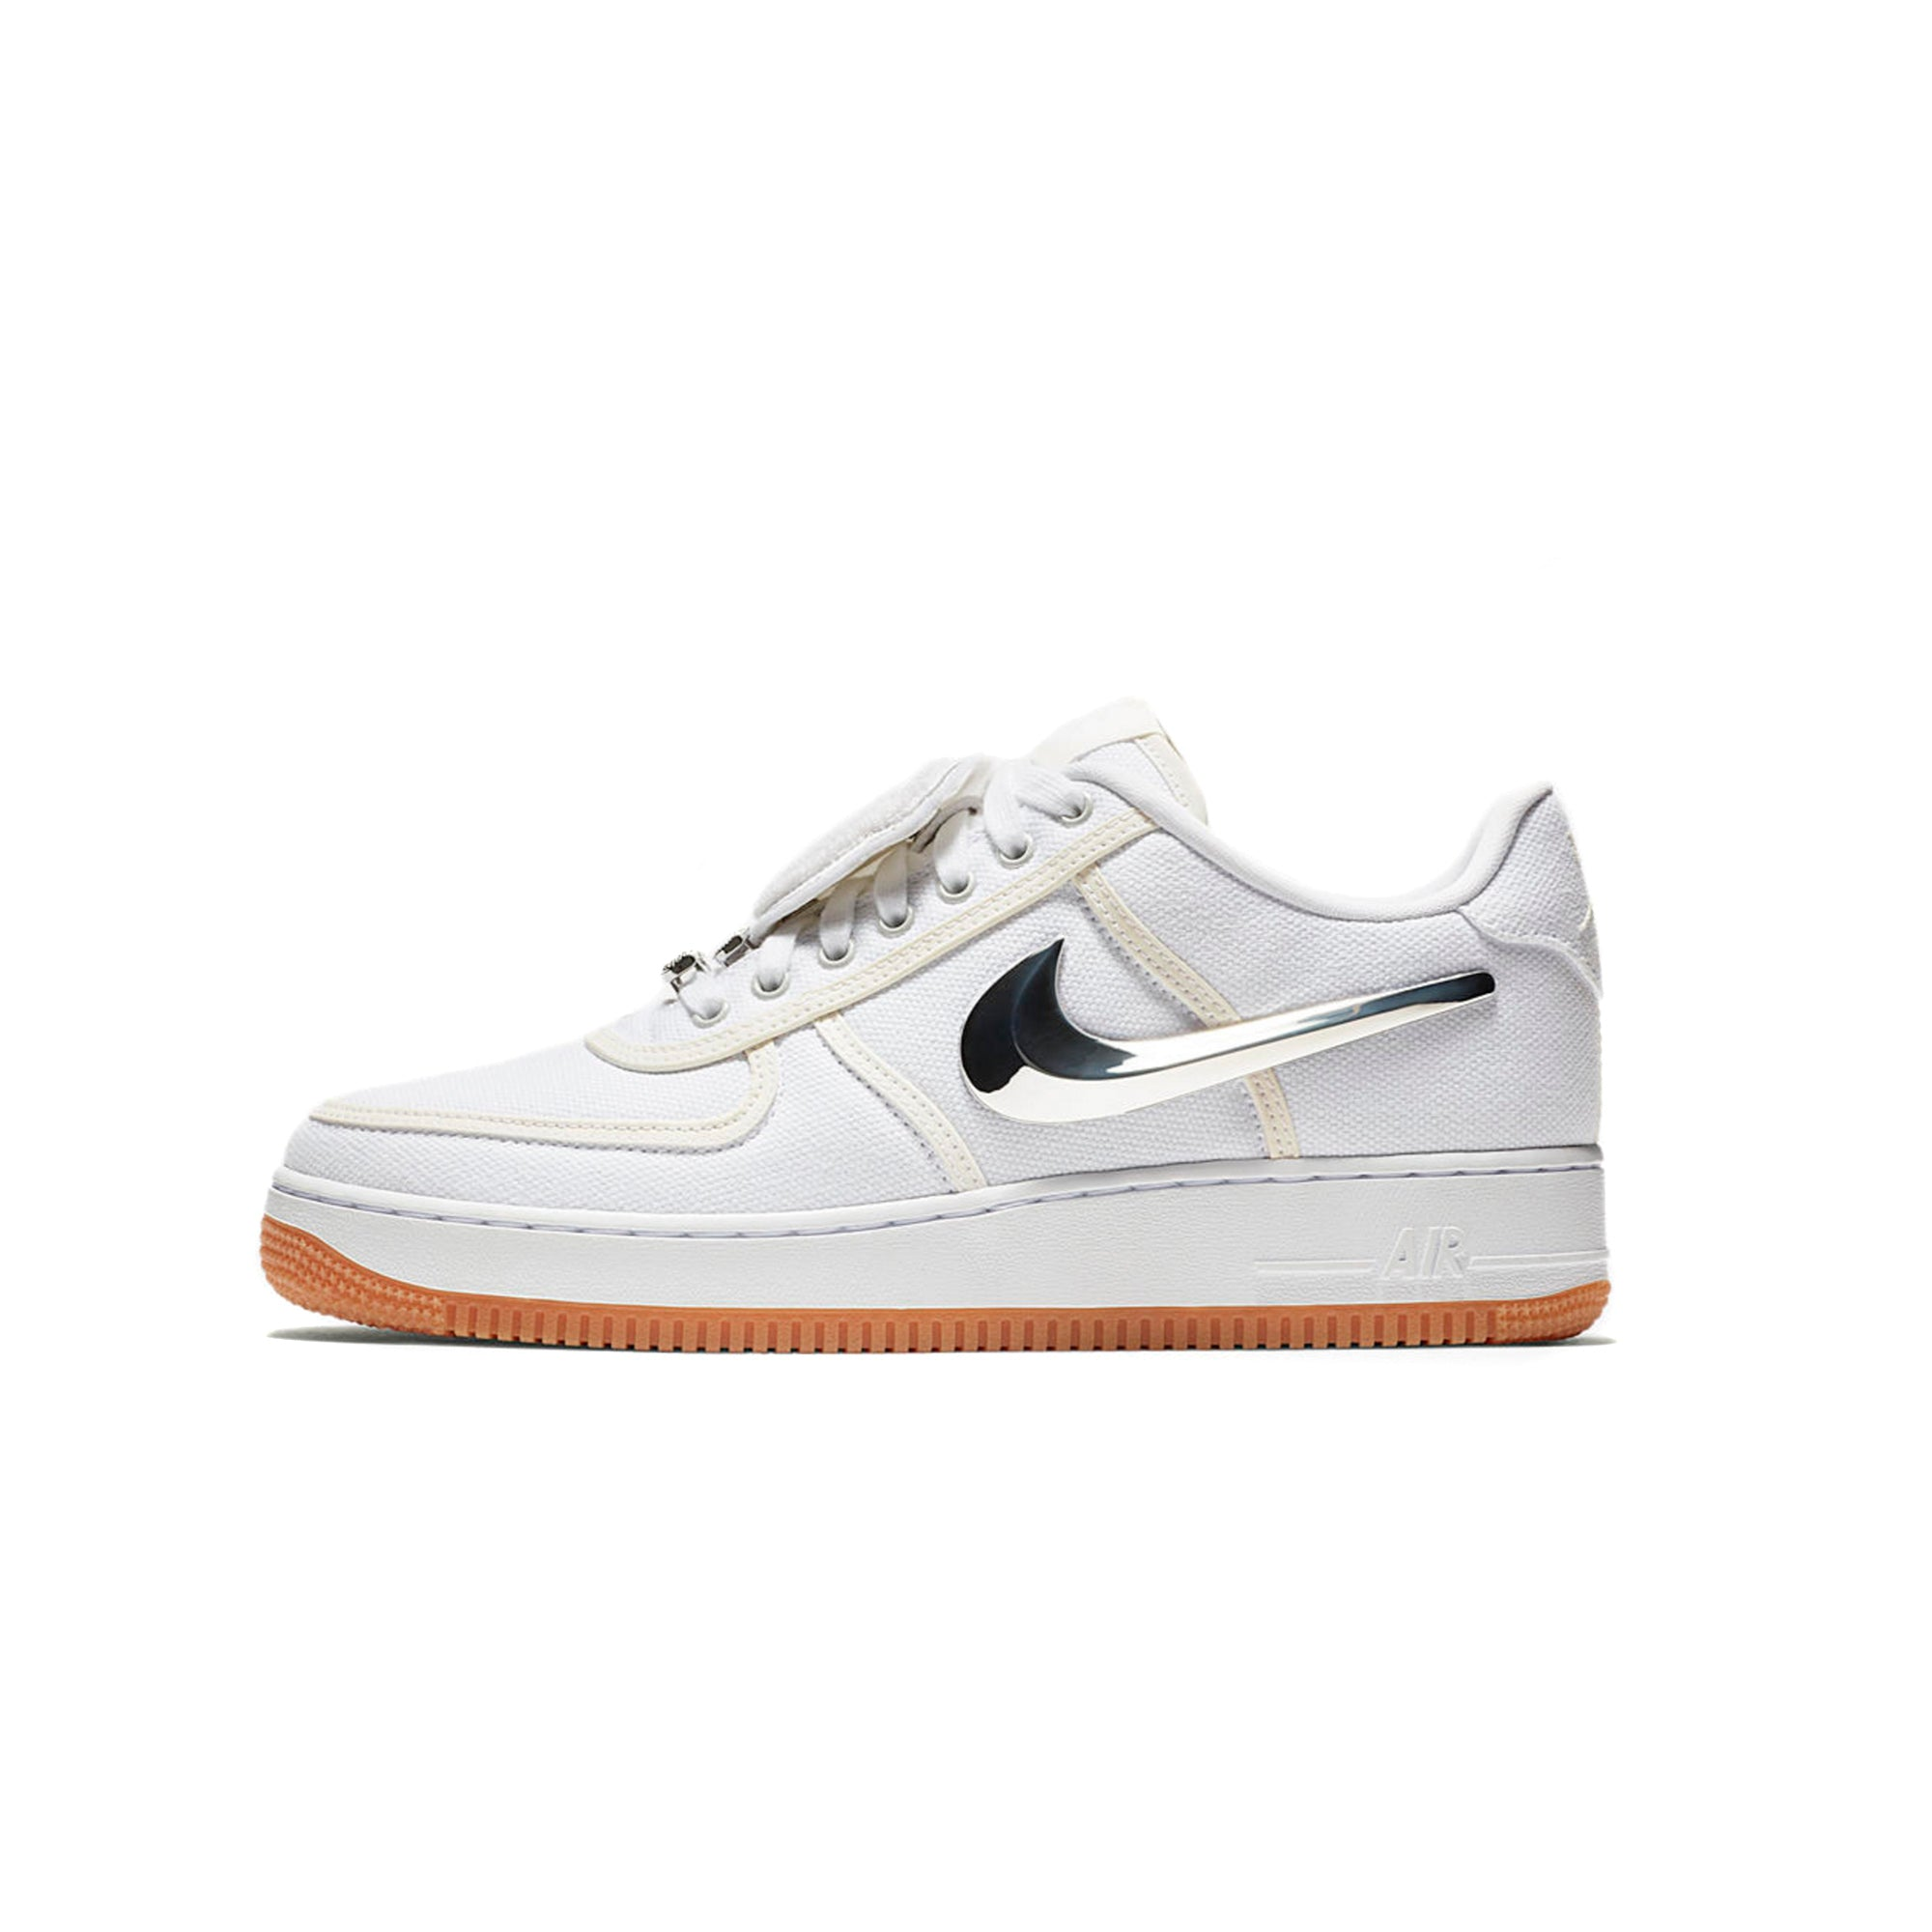 Nike '07 Air Force 1 '07 Nike Af100 Aq4211 Travis Scott [100] 4637c5